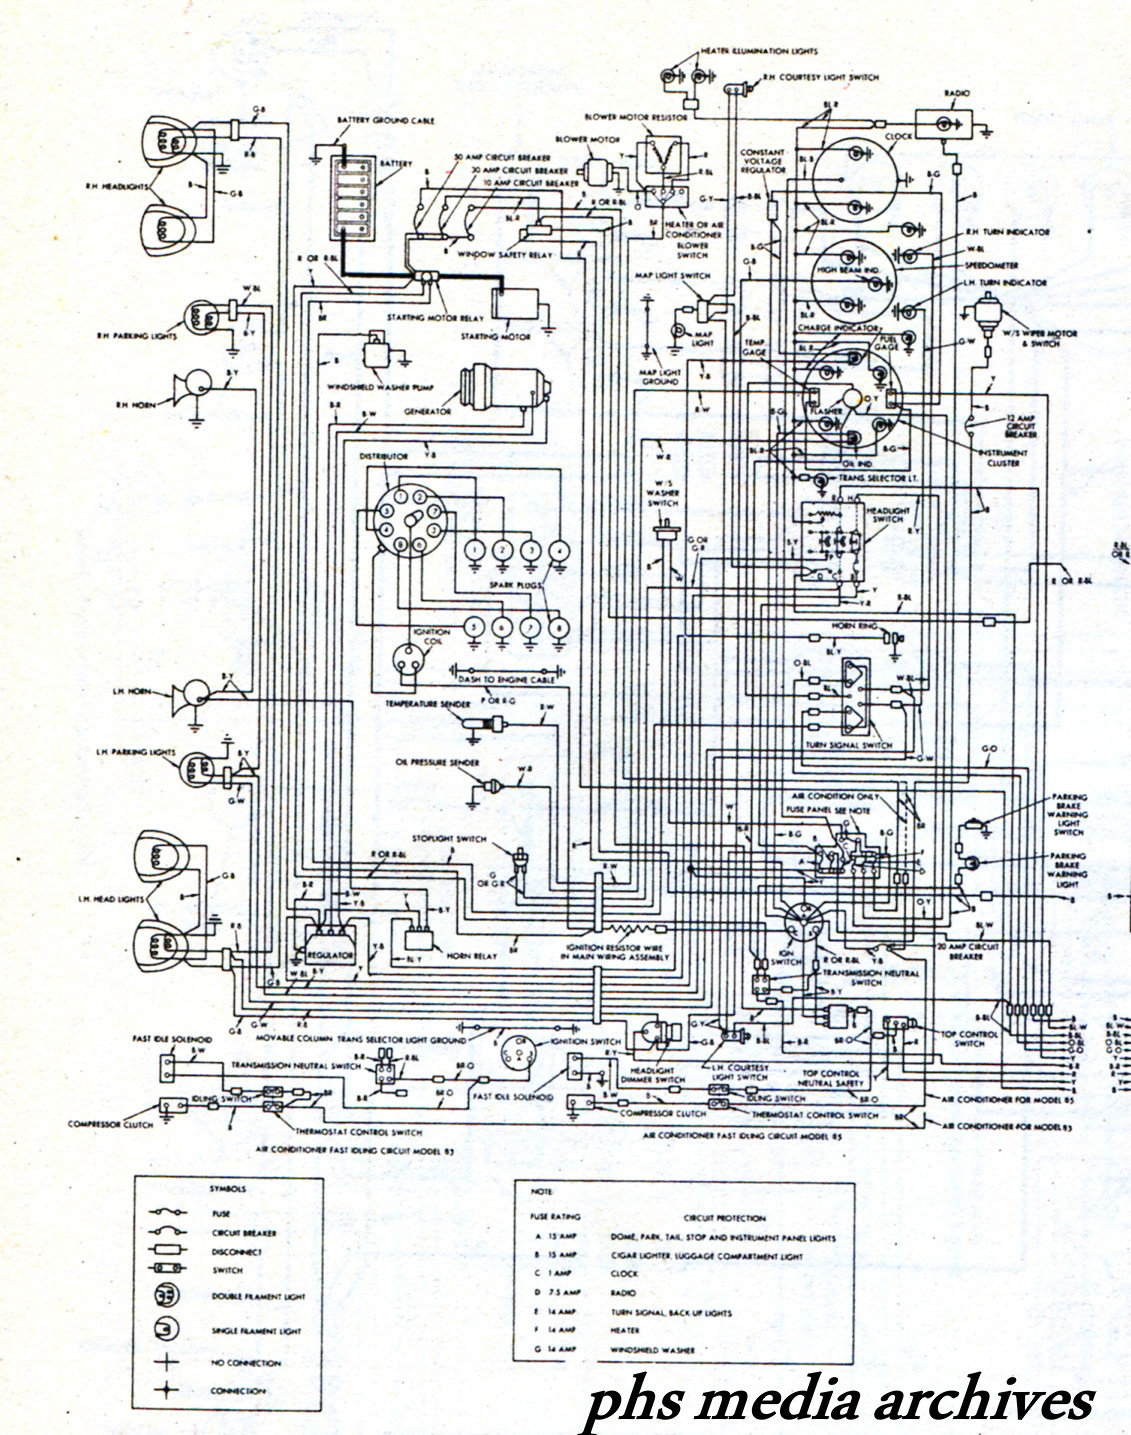 73 Cuda Wiring Diagram | Wiring Diagrams  Barracuda Wiring Diagram on pink barracuda, custom barracuda, green barracuda, craigslist barracuda, black barracuda, hemi barracuda,